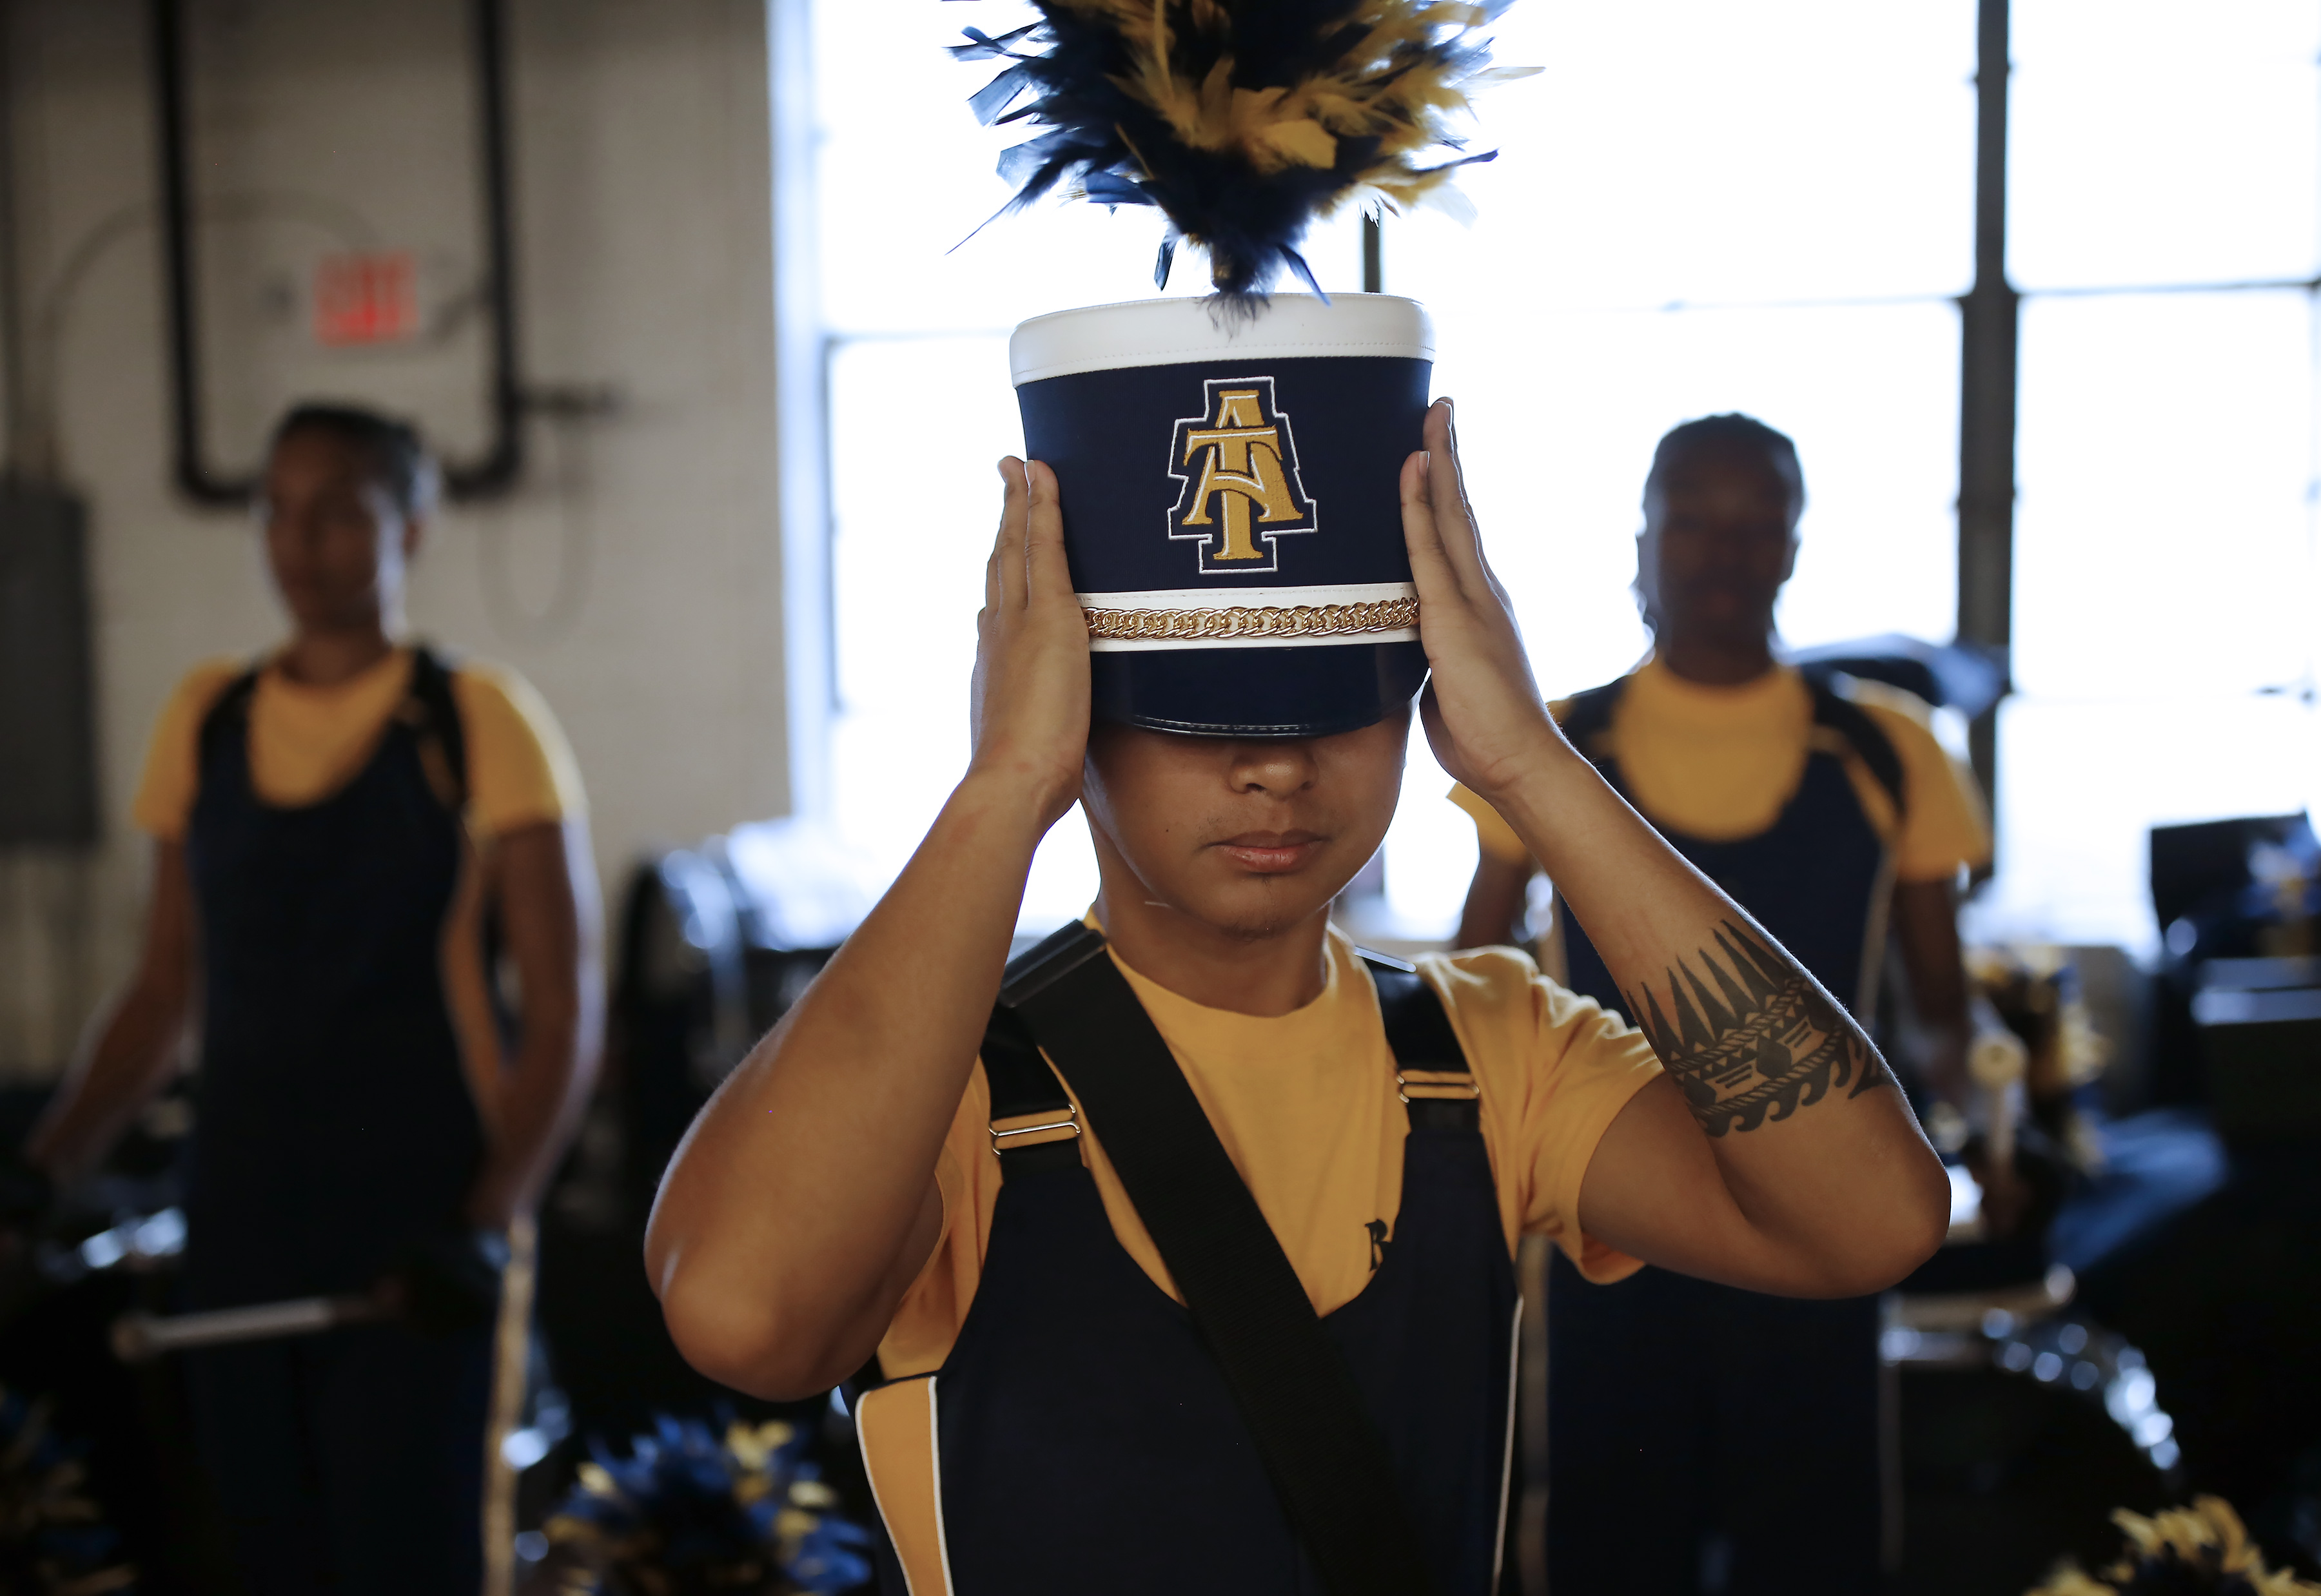 The 5th Quarter: North Carolina A&T's Blue and Gold Marching Machine